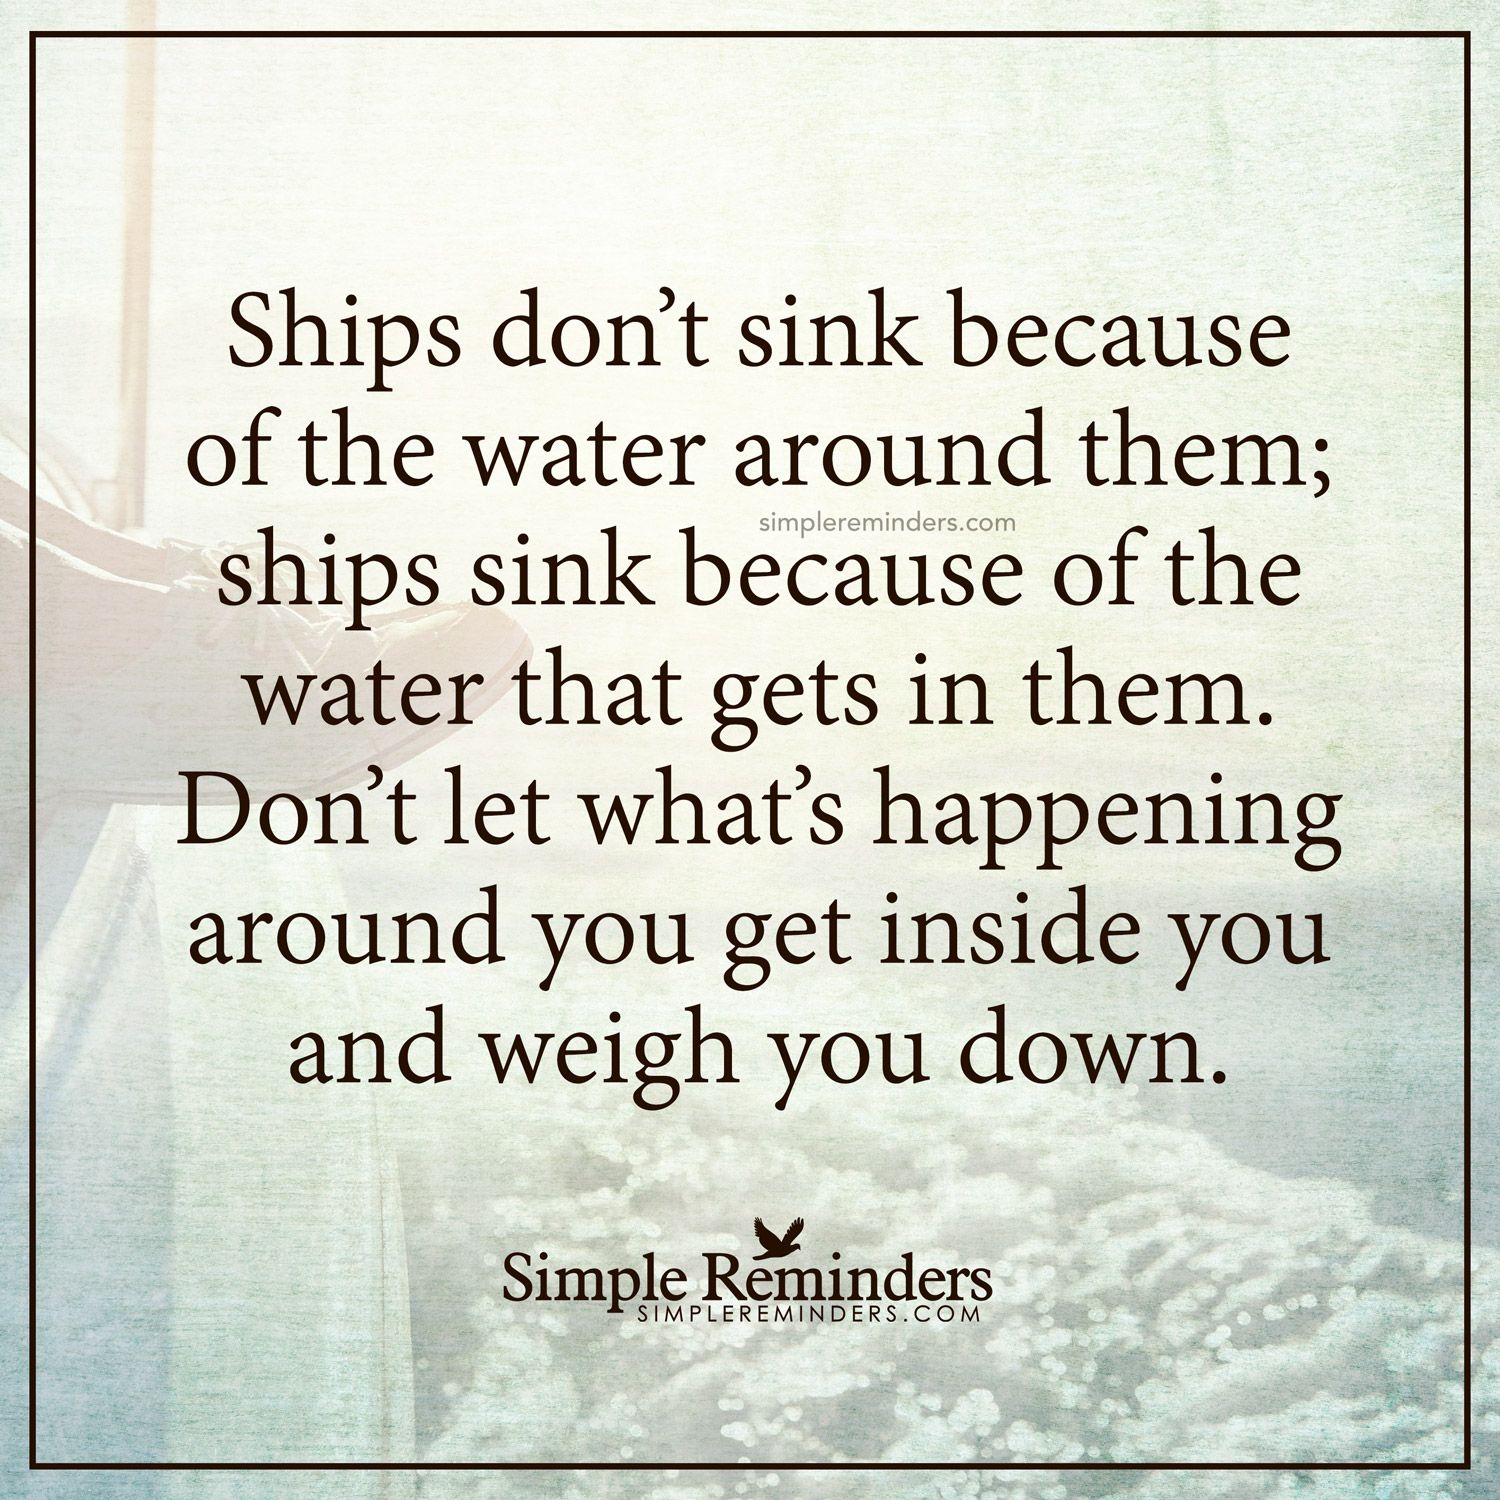 Why do not the ships sink